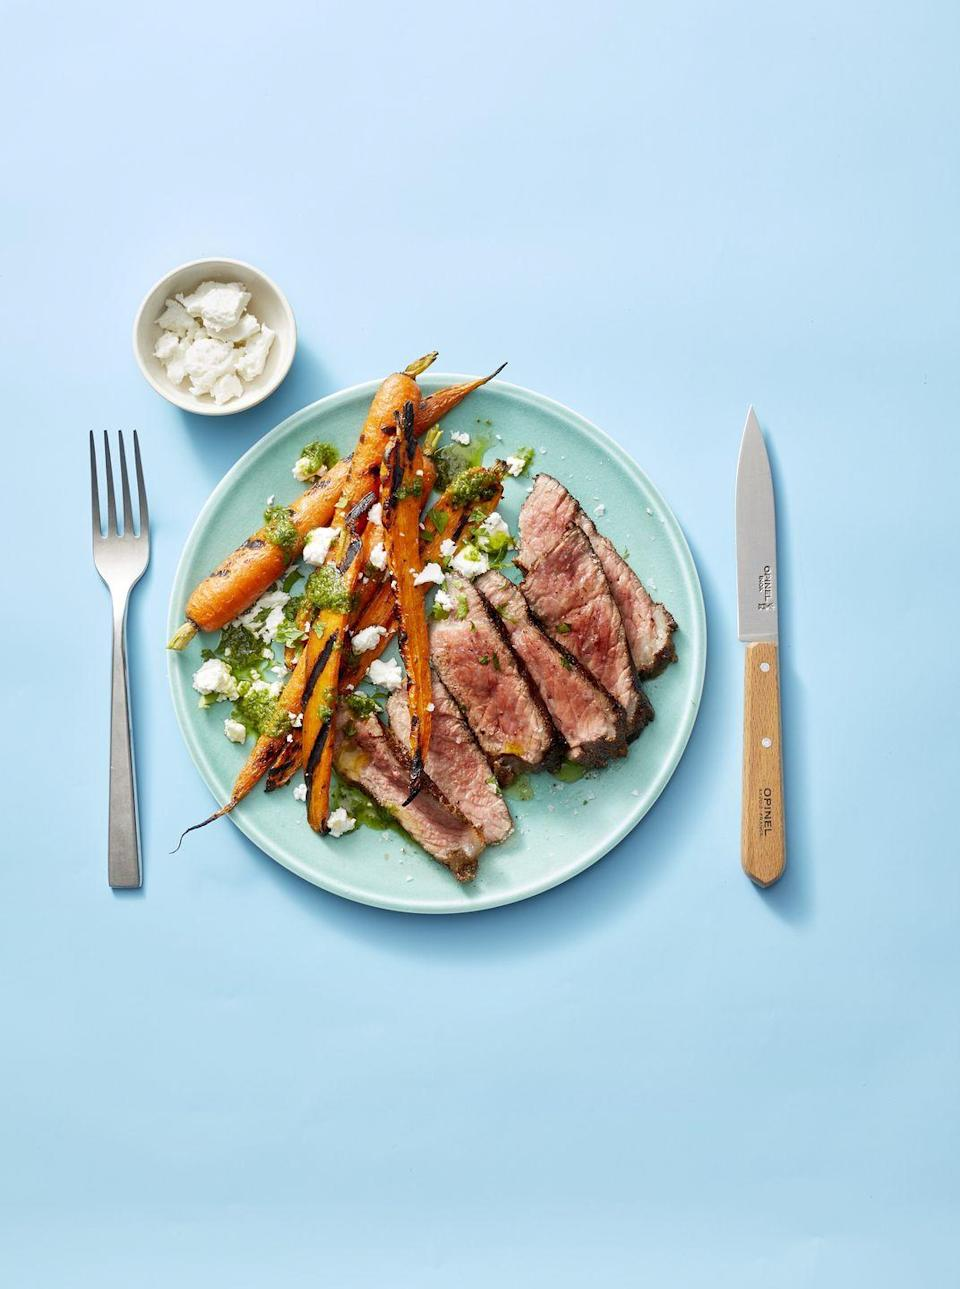 """<p>Rather than a bottled marinade, you'll use a few aromatic spices to dress these steaks up a few days beforehand. It'll burst with flavor alongside seasonal veggies.</p><p><em><a href=""""https://www.goodhousekeeping.com/food-recipes/easy/a28470209/grilled-moroccan-steak-and-carrots-recipe/"""" rel=""""nofollow noopener"""" target=""""_blank"""" data-ylk=""""slk:Get the recipe for Grilled Moroccan Steak and Carrots »"""" class=""""link rapid-noclick-resp"""">Get the recipe for Grilled Moroccan Steak and Carrots »</a></em></p>"""